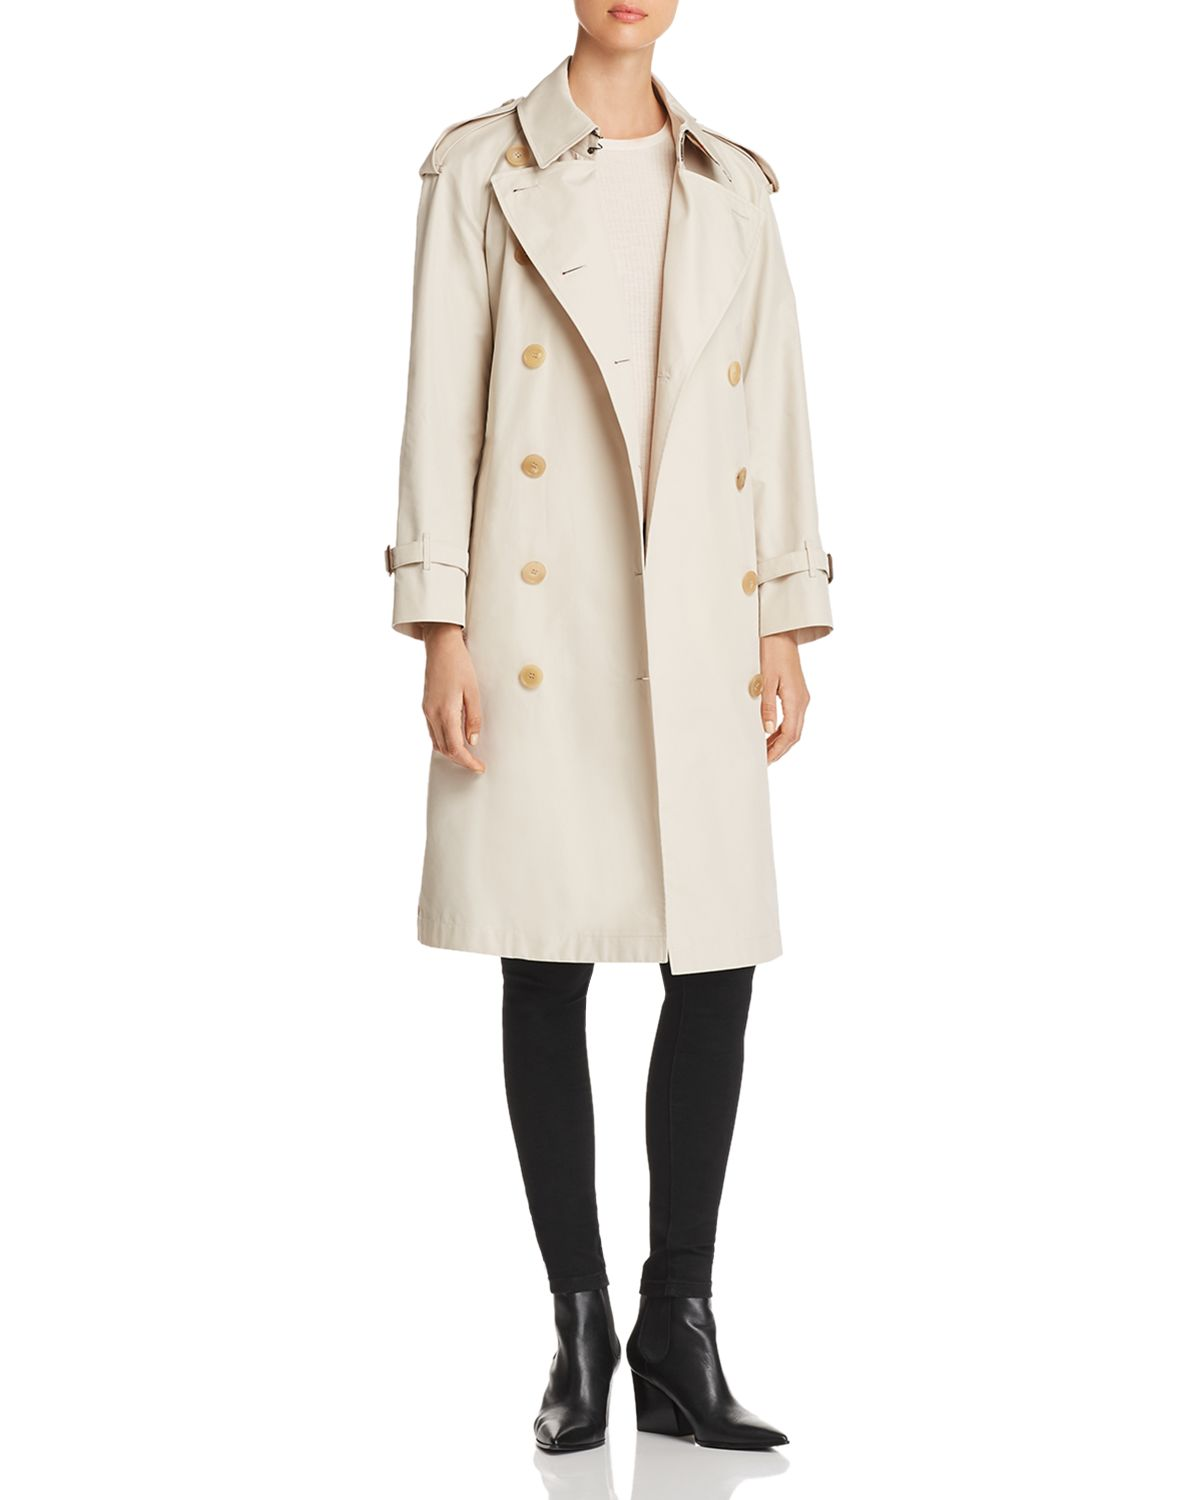 Trecastle Stripe Trench Coat by Burberry